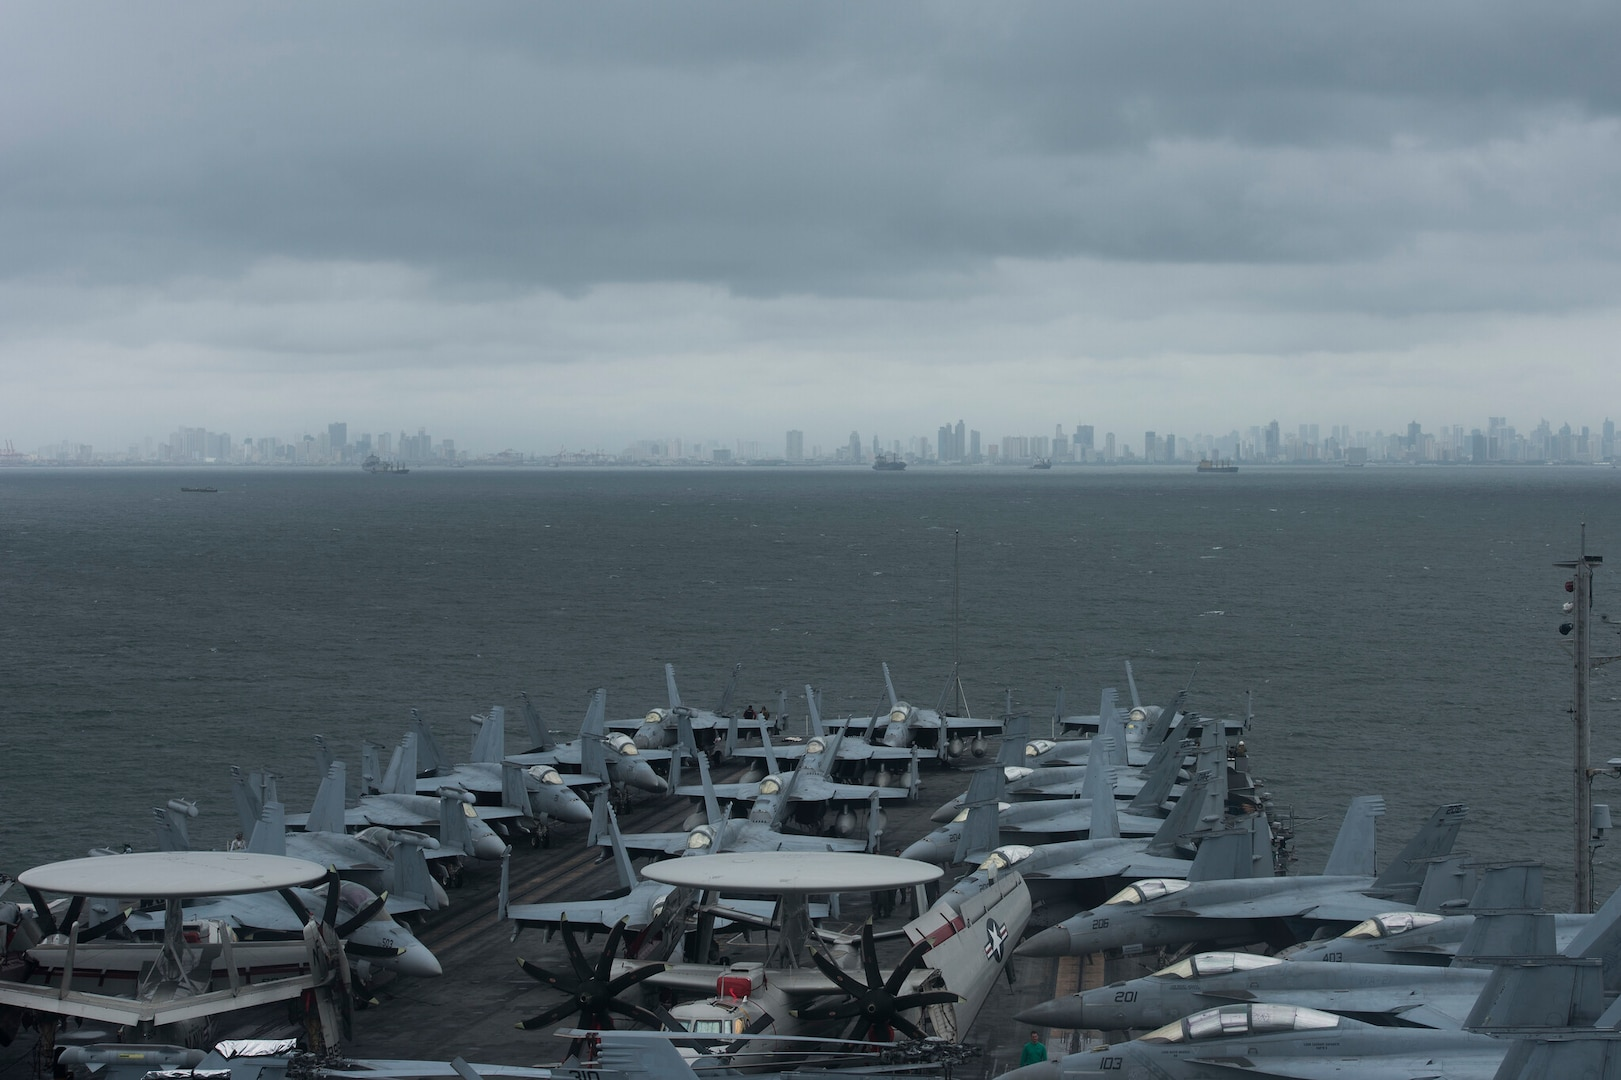 190807-N-KP021-0004 MANILA, Philippines (August 9, 2019) The aircraft carrier USS Ronald Reagan (CVN 76) anchors outside Manila, Philippines. Ronald Reagan is forward-deployed to the U.S. 7th Fleet area of operations in support of security and stability in the Indo-Pacific region.